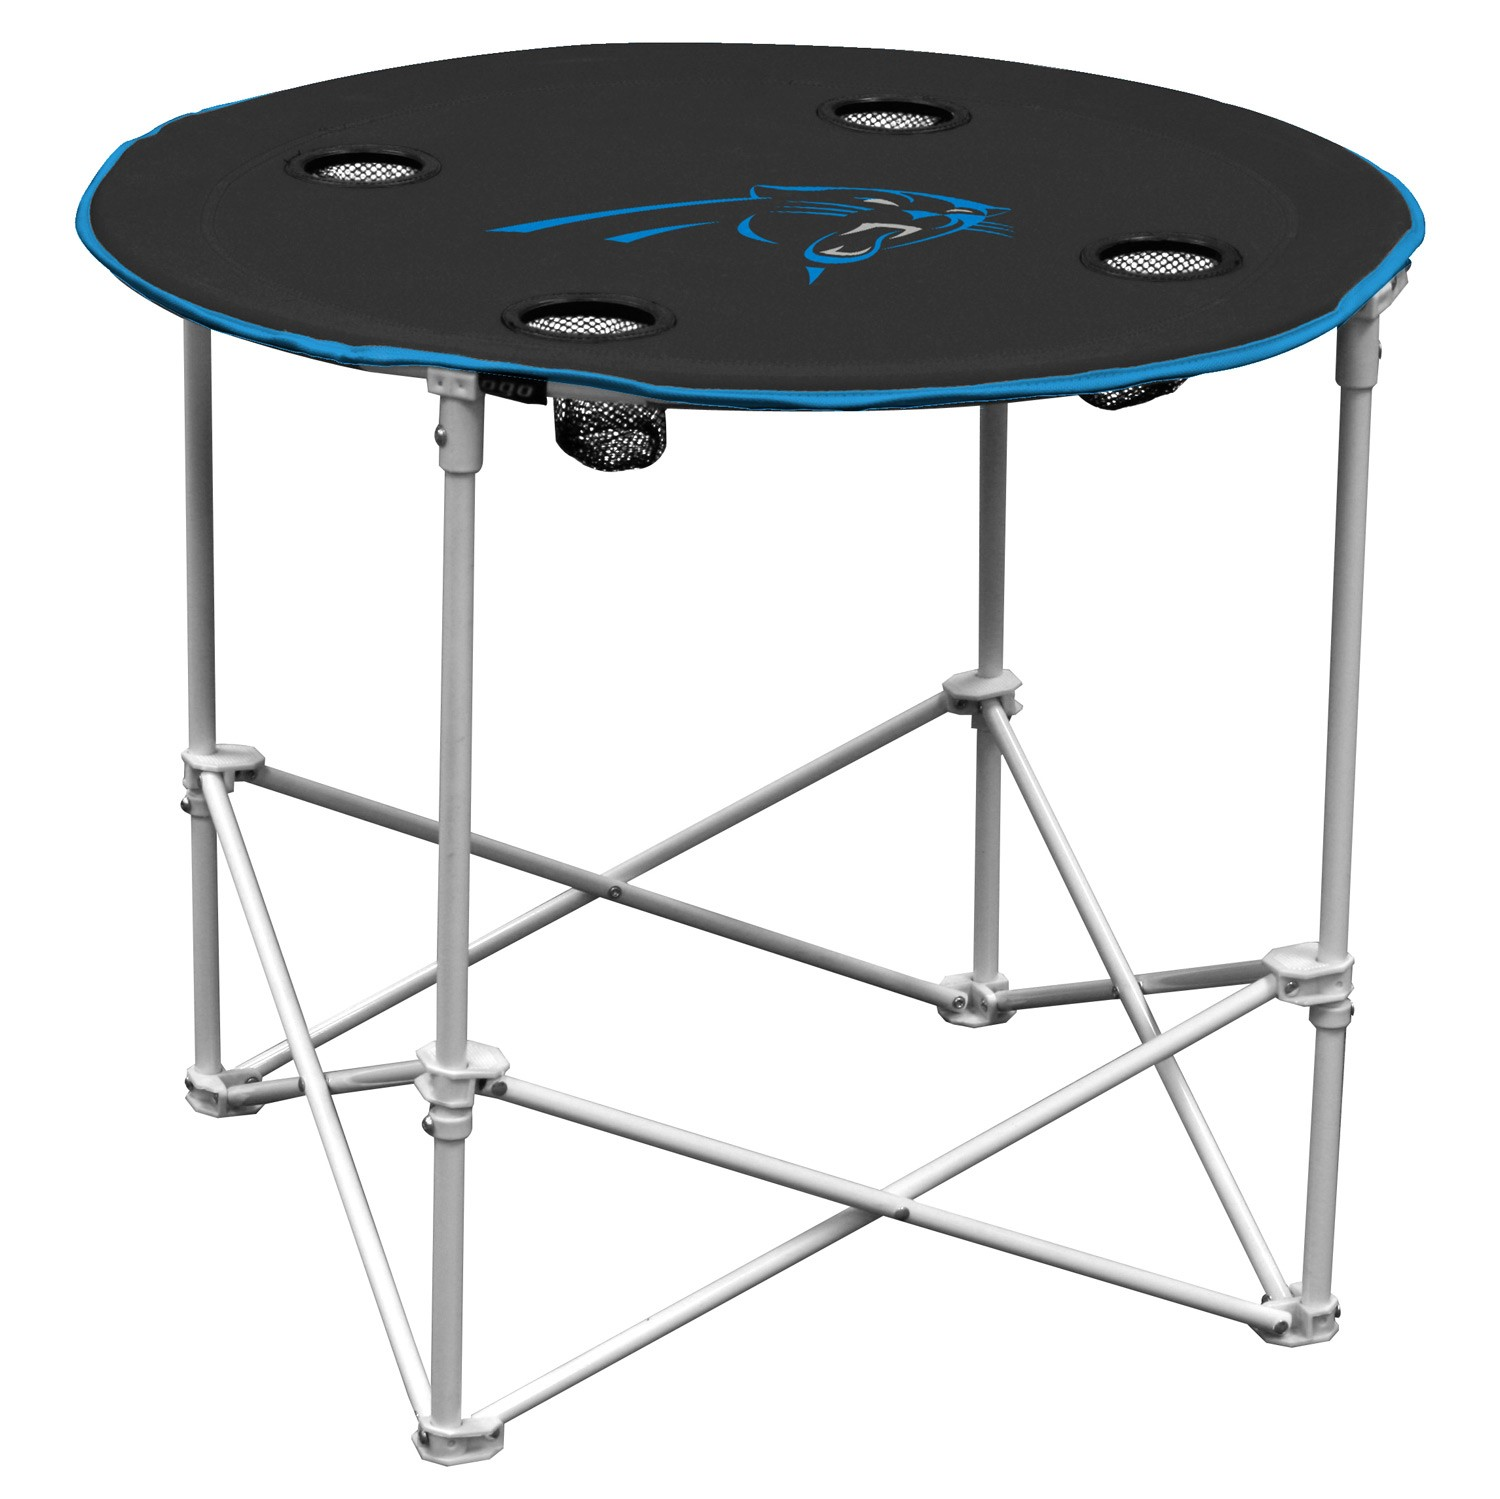 Panthers-table